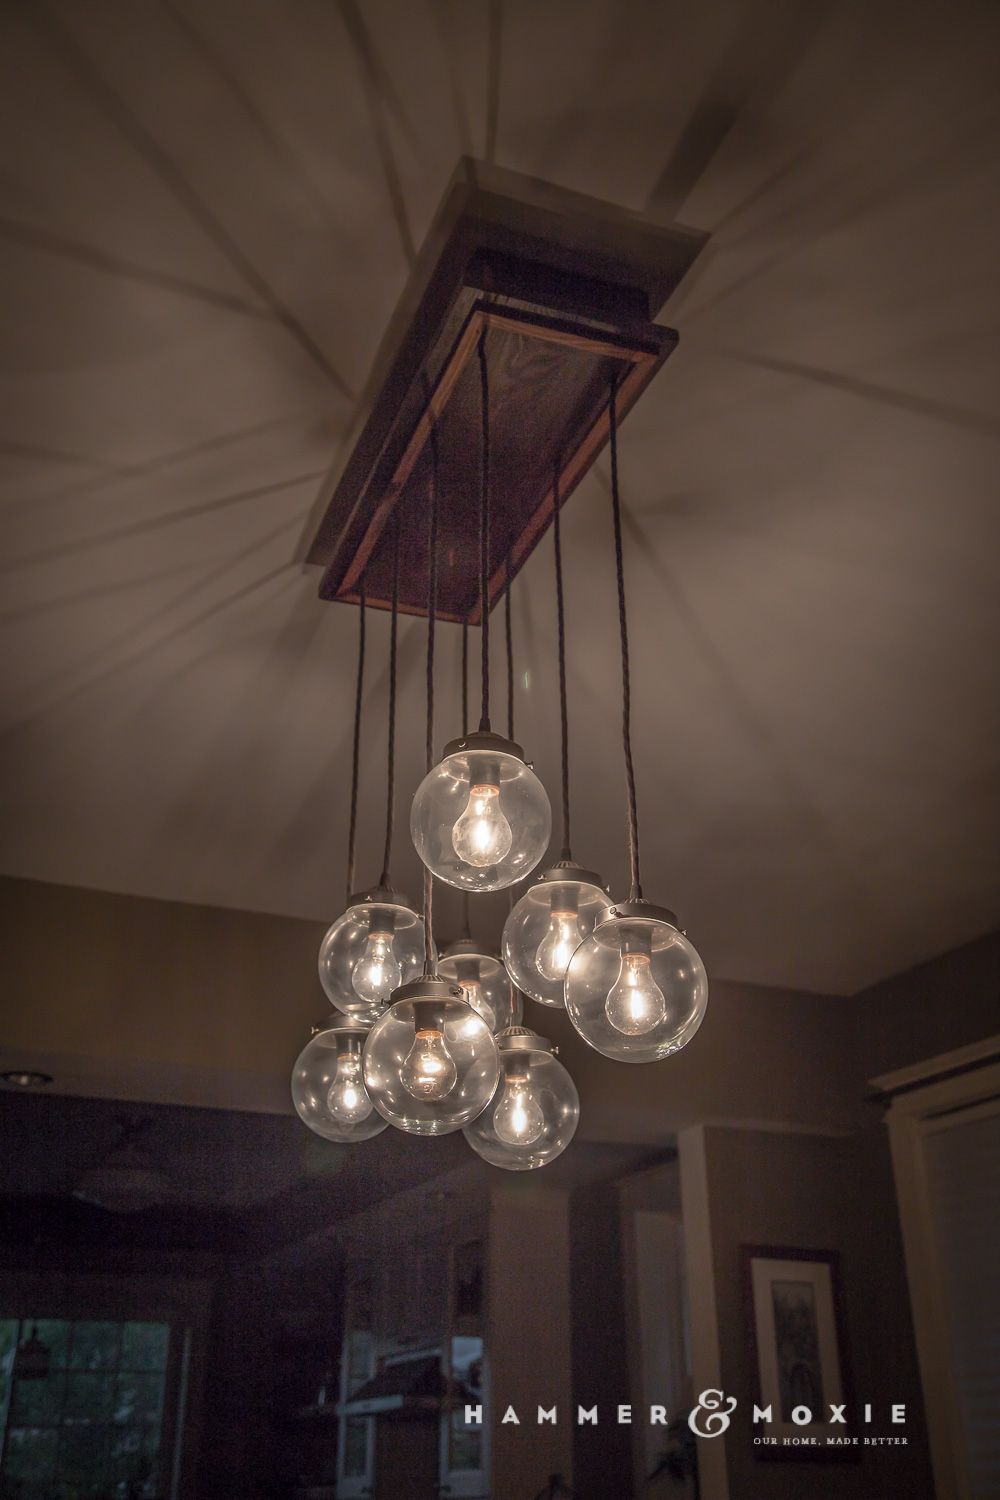 small resolution of homemade chandelier with irregularly hung globes cotton covered wiring and a ceiling box made of reclaimed wood hammer moxie